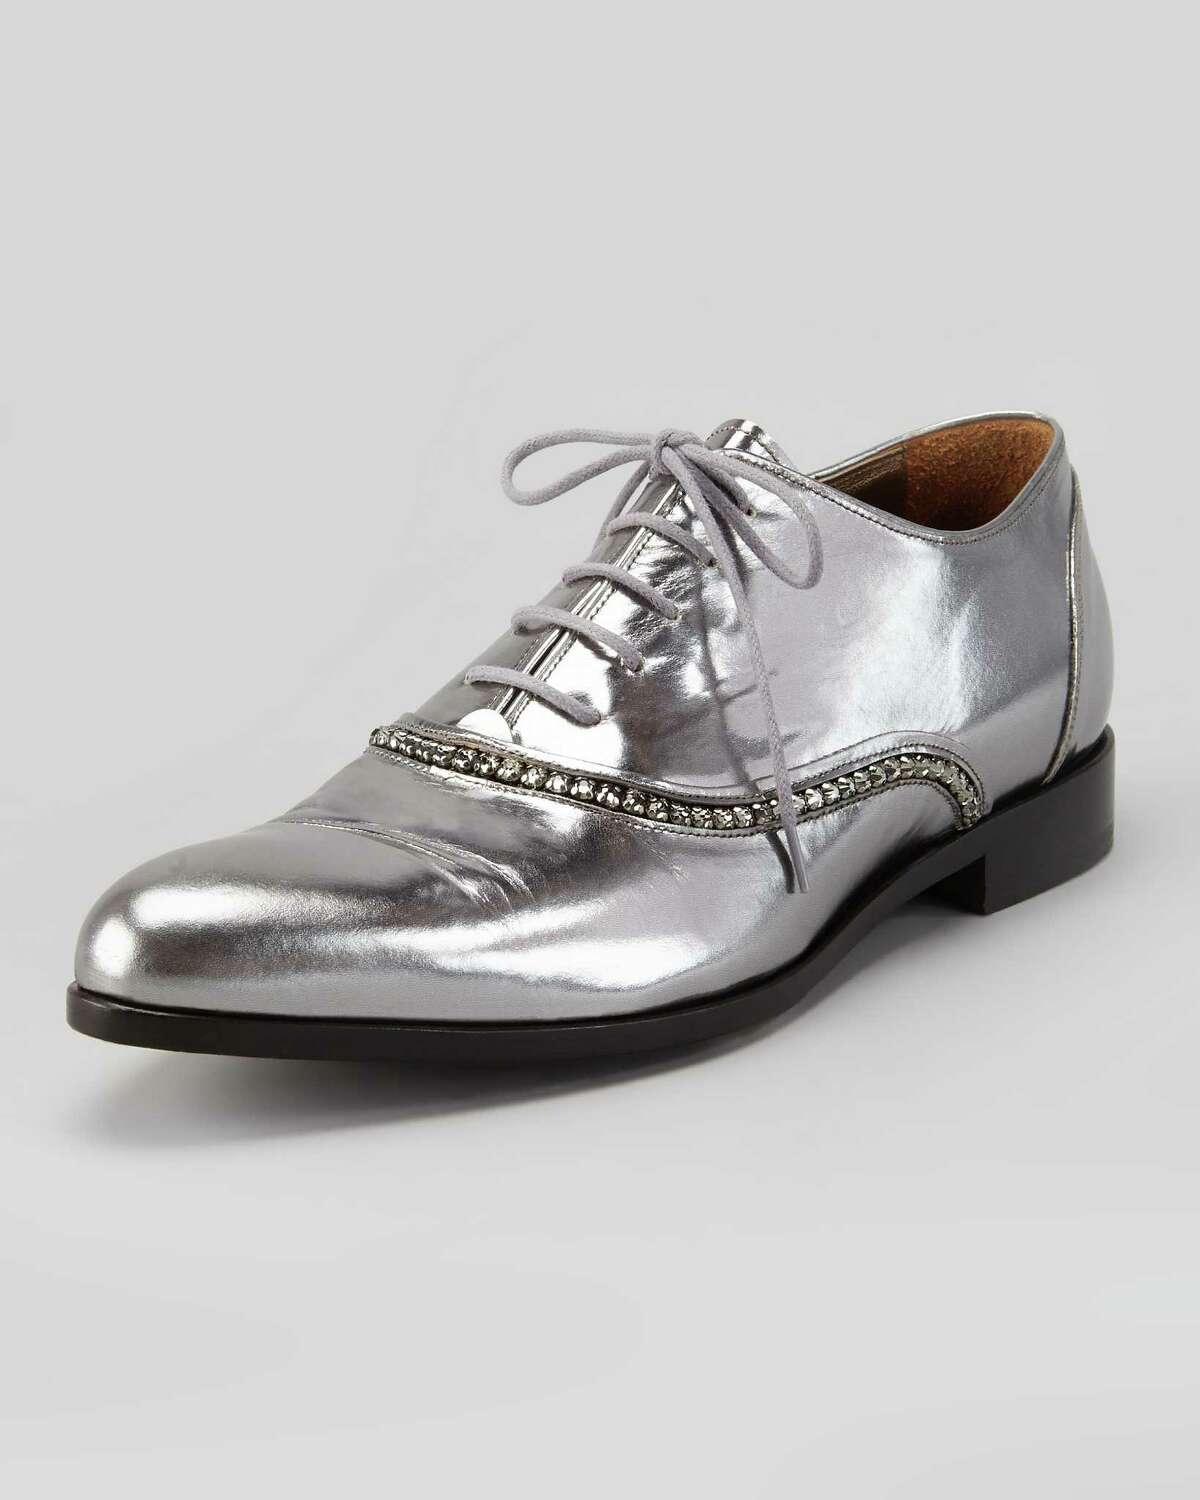 METALLIC MADNESS: Lanvin's silver lace up, $1,150 at Neiman Marcus, gives women a touch of menswear for women.